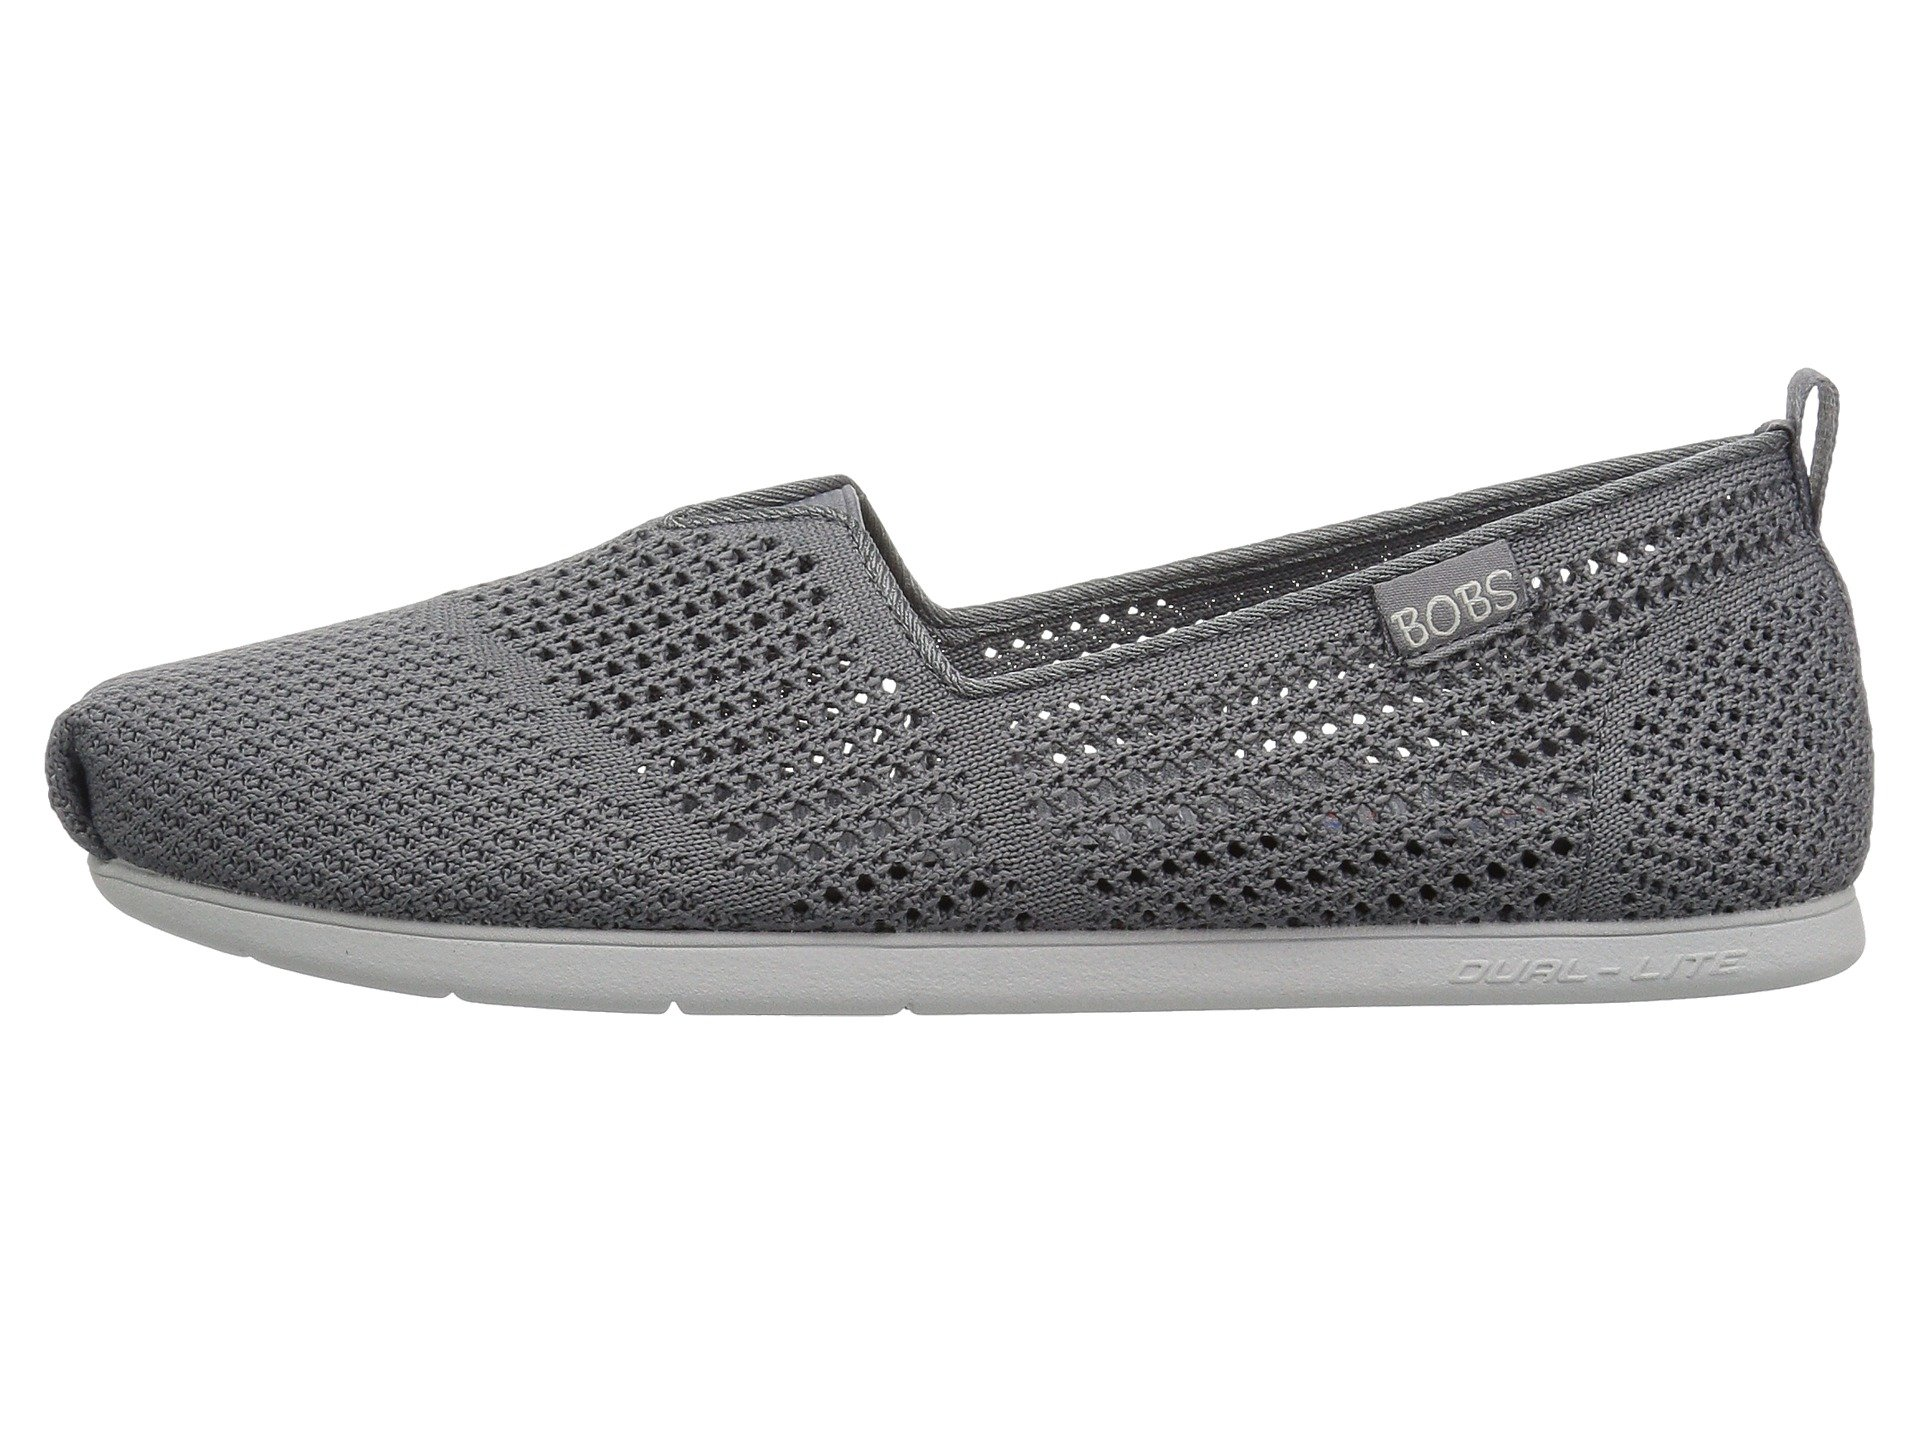 Charcoal Bobs Peek From Skechers Lite Plush wRq46RX